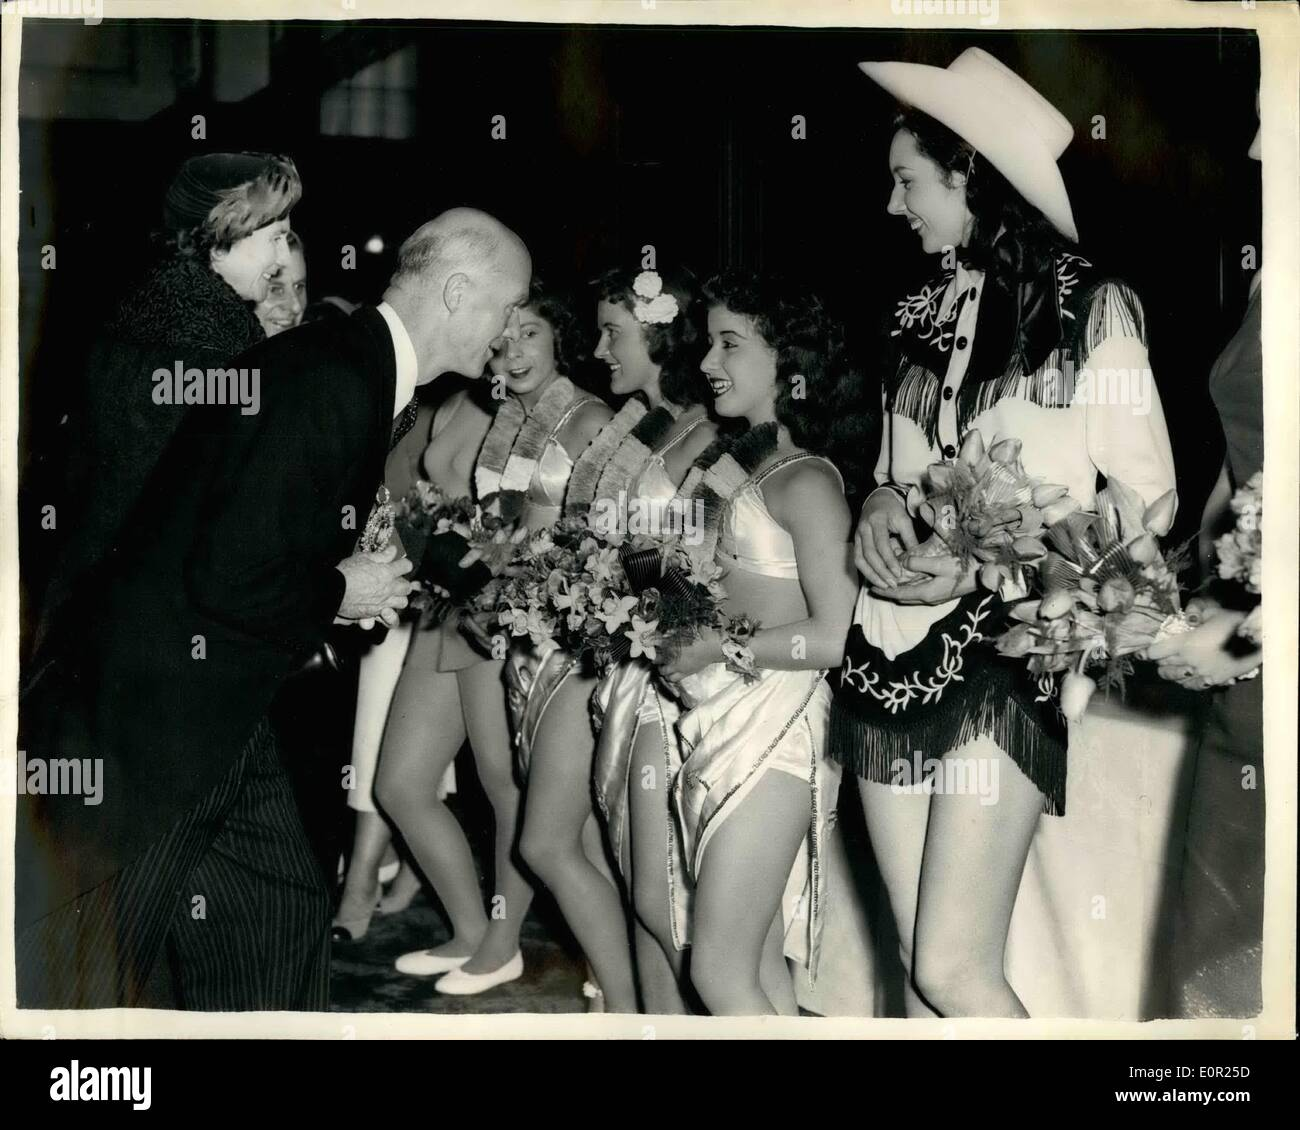 Oct. 10, 1957 - The lord mayor meets circus artistes: keystone photo shows The Lord Mayor of London, sirdenis truscott, chatting to the Elephant girls. with the cowboy whip act on right at Olympia, where the Bert man mills circus opens this afternoon. - Stock Image